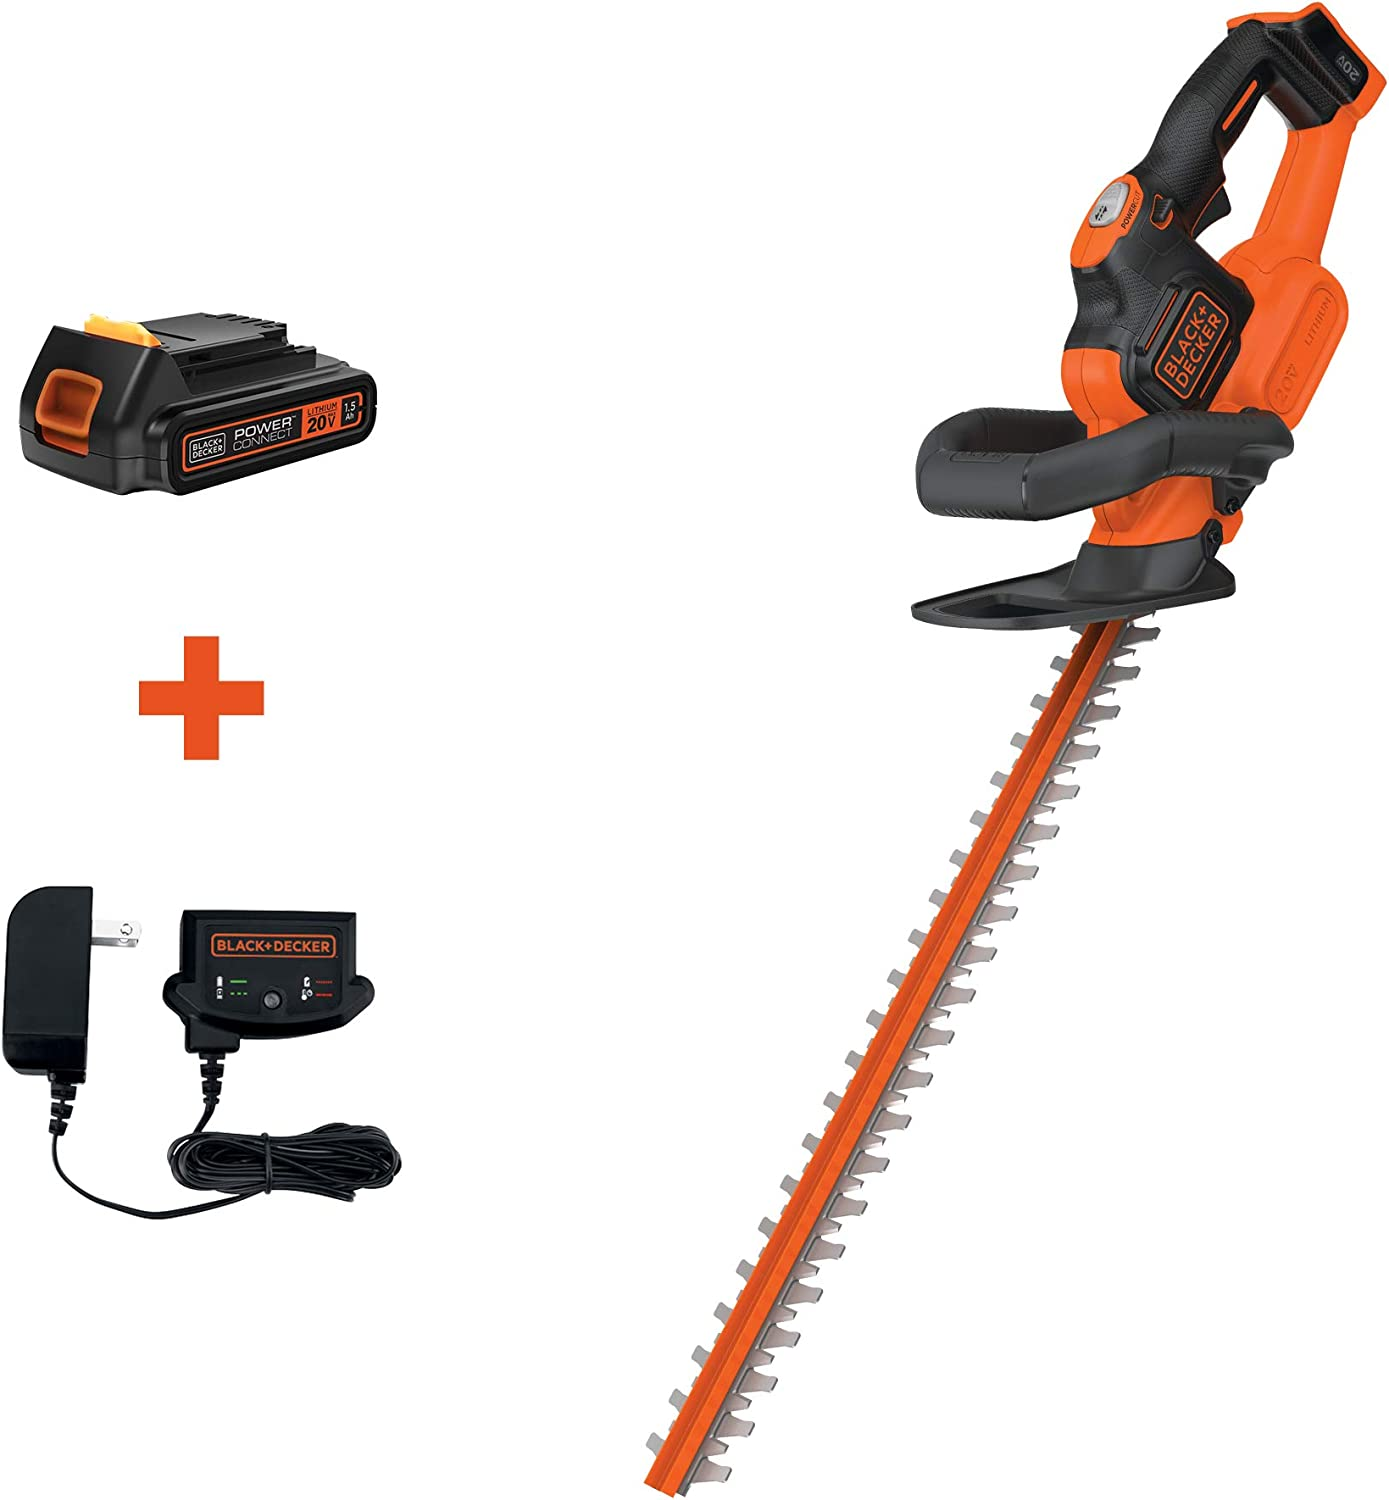 Amazon.com: BLACK+DECKER LHT321FF 20V MAX Lithium ...